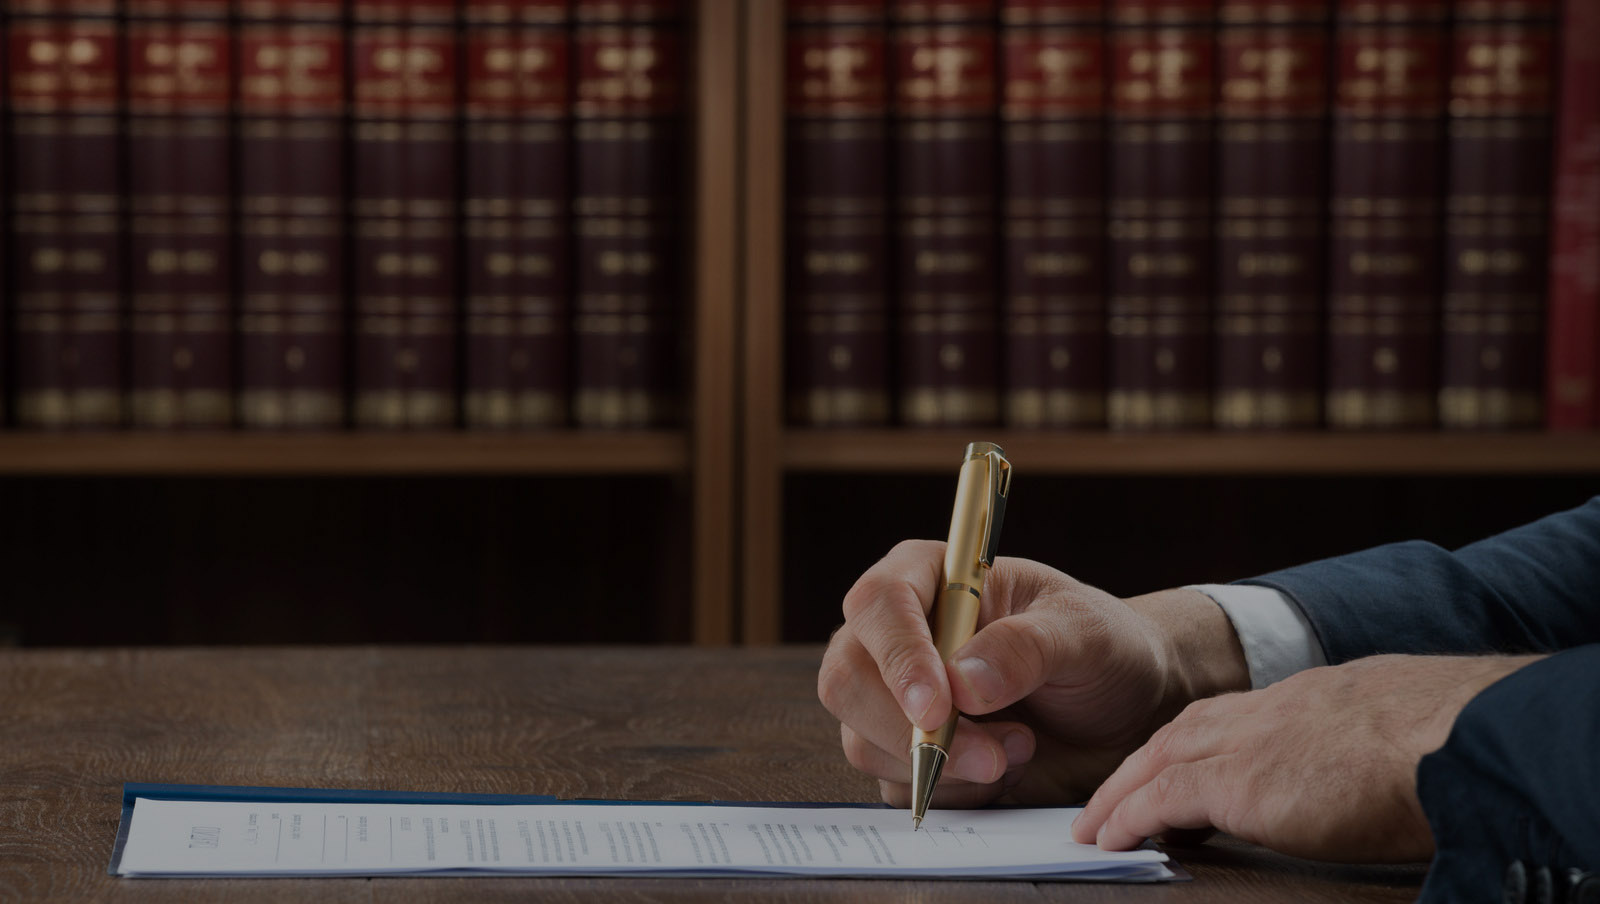 Lawyer signing an agreement in front of legal books